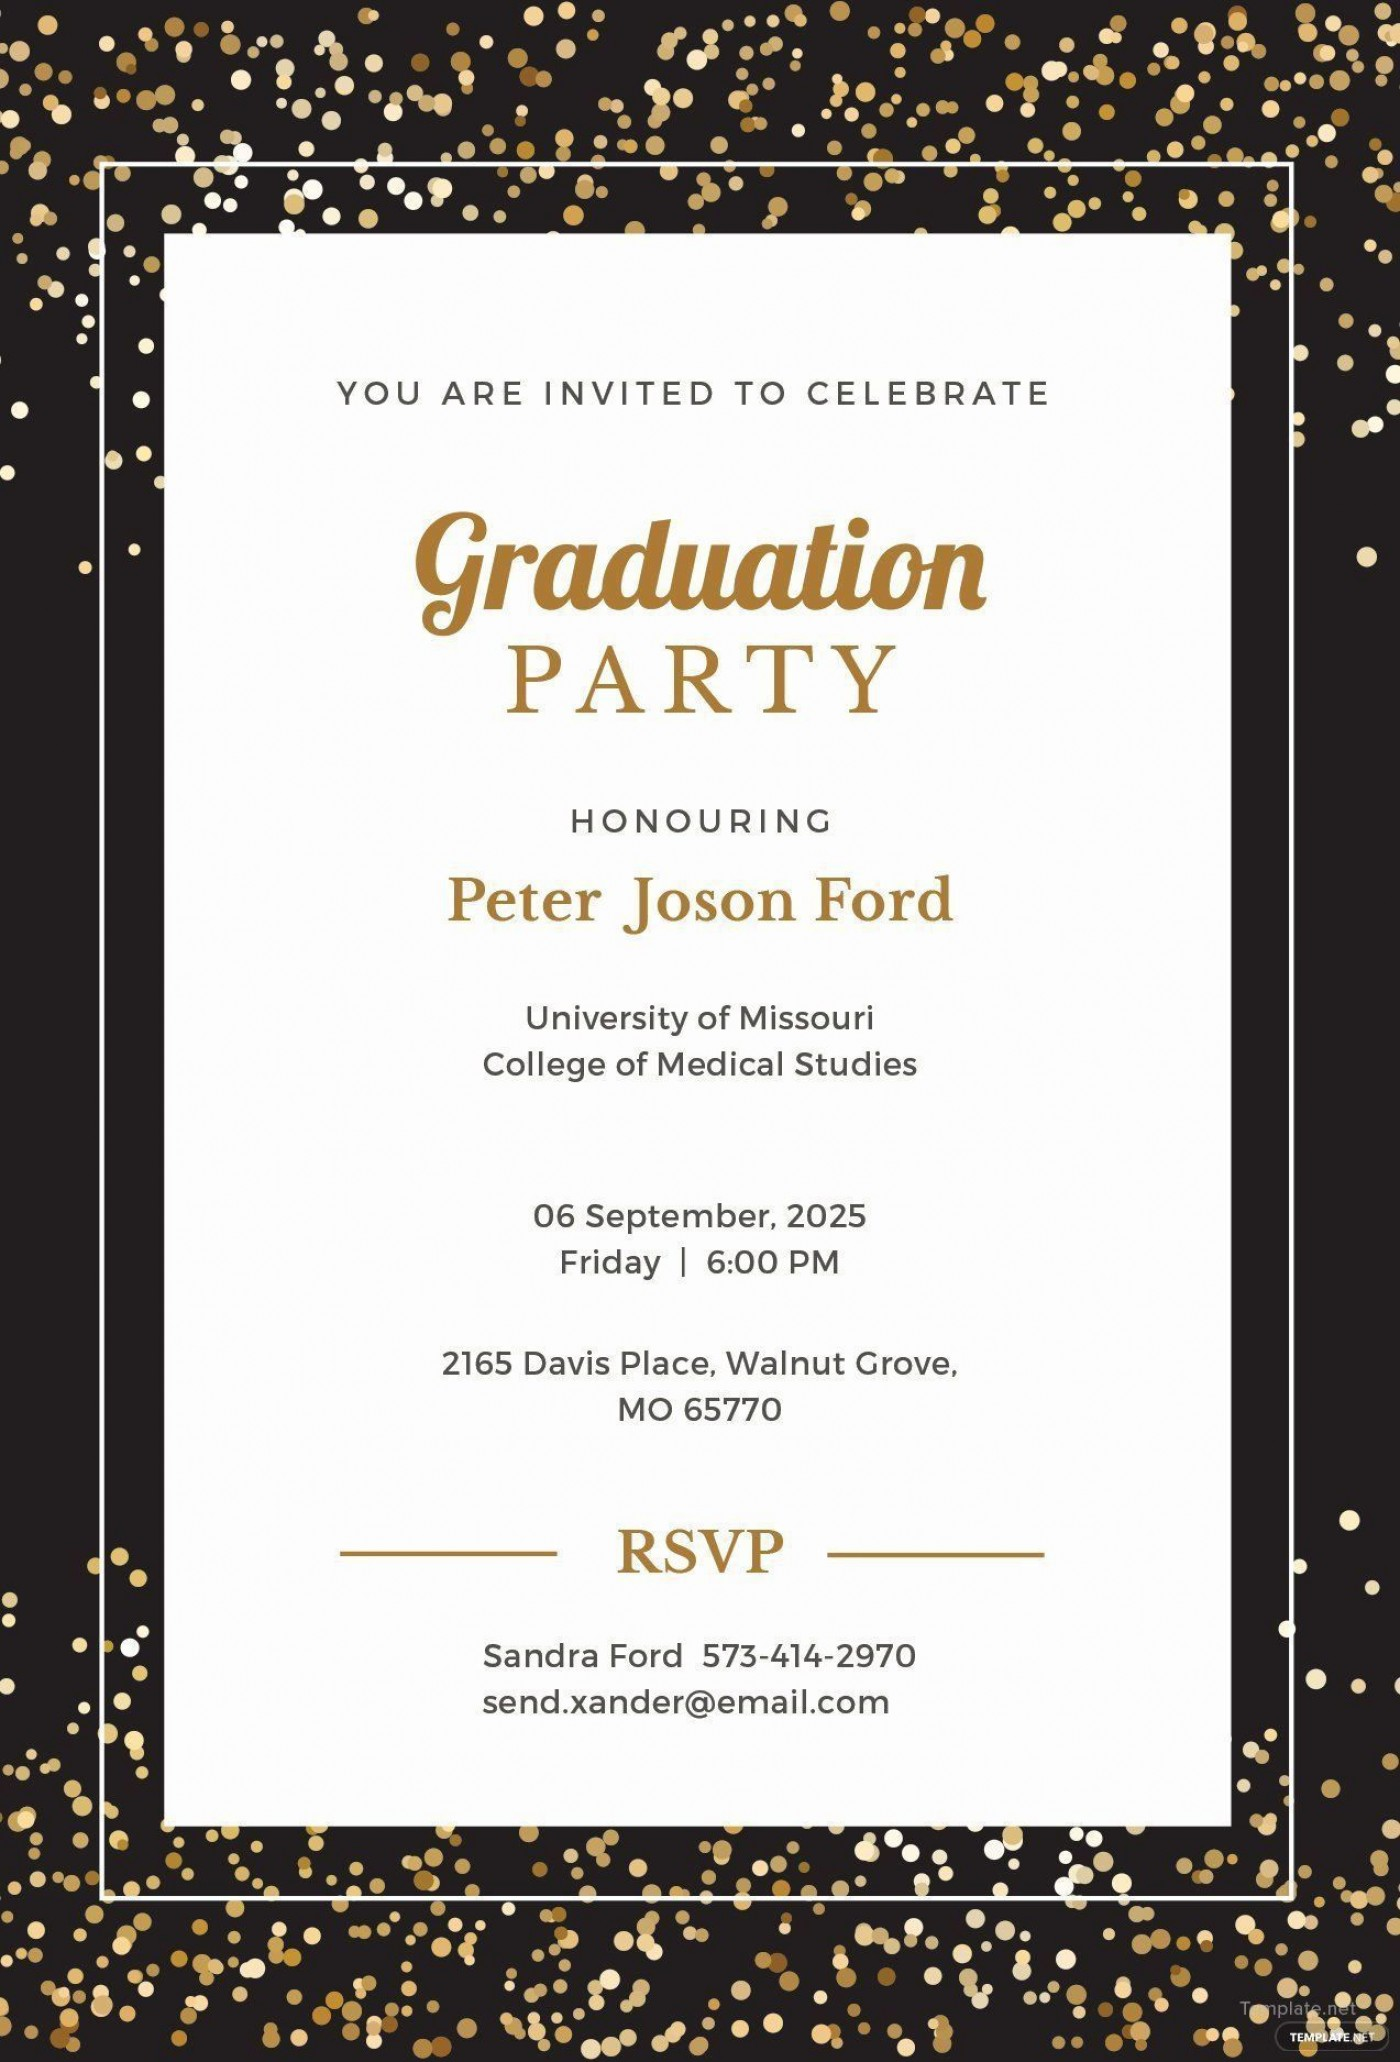 008 Dreaded Microsoft Word Graduation Party Invitation Template High Definition 1400